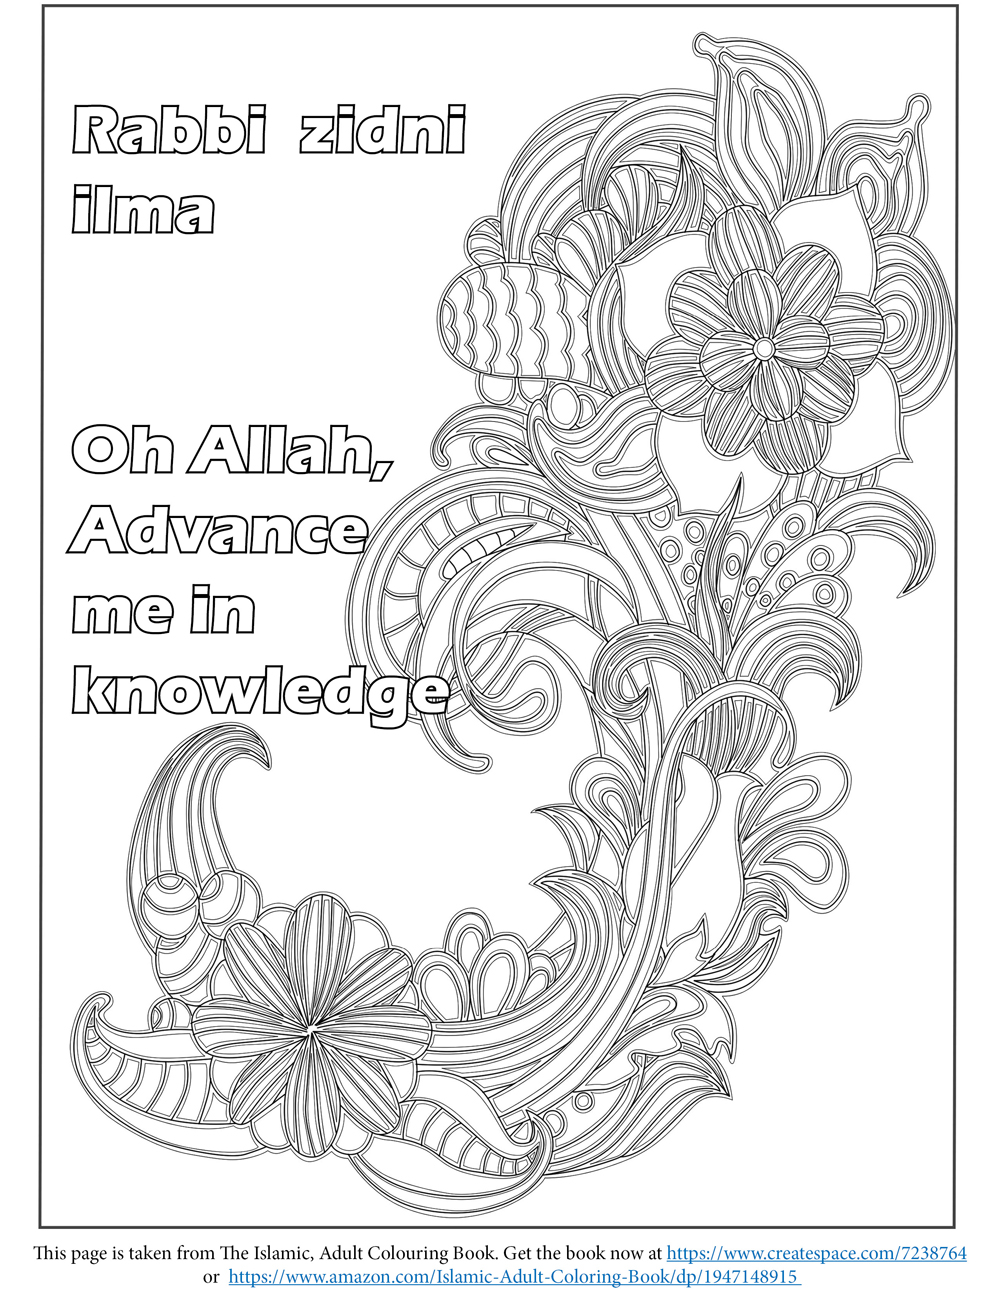 ilma education  free colouring page and author interview